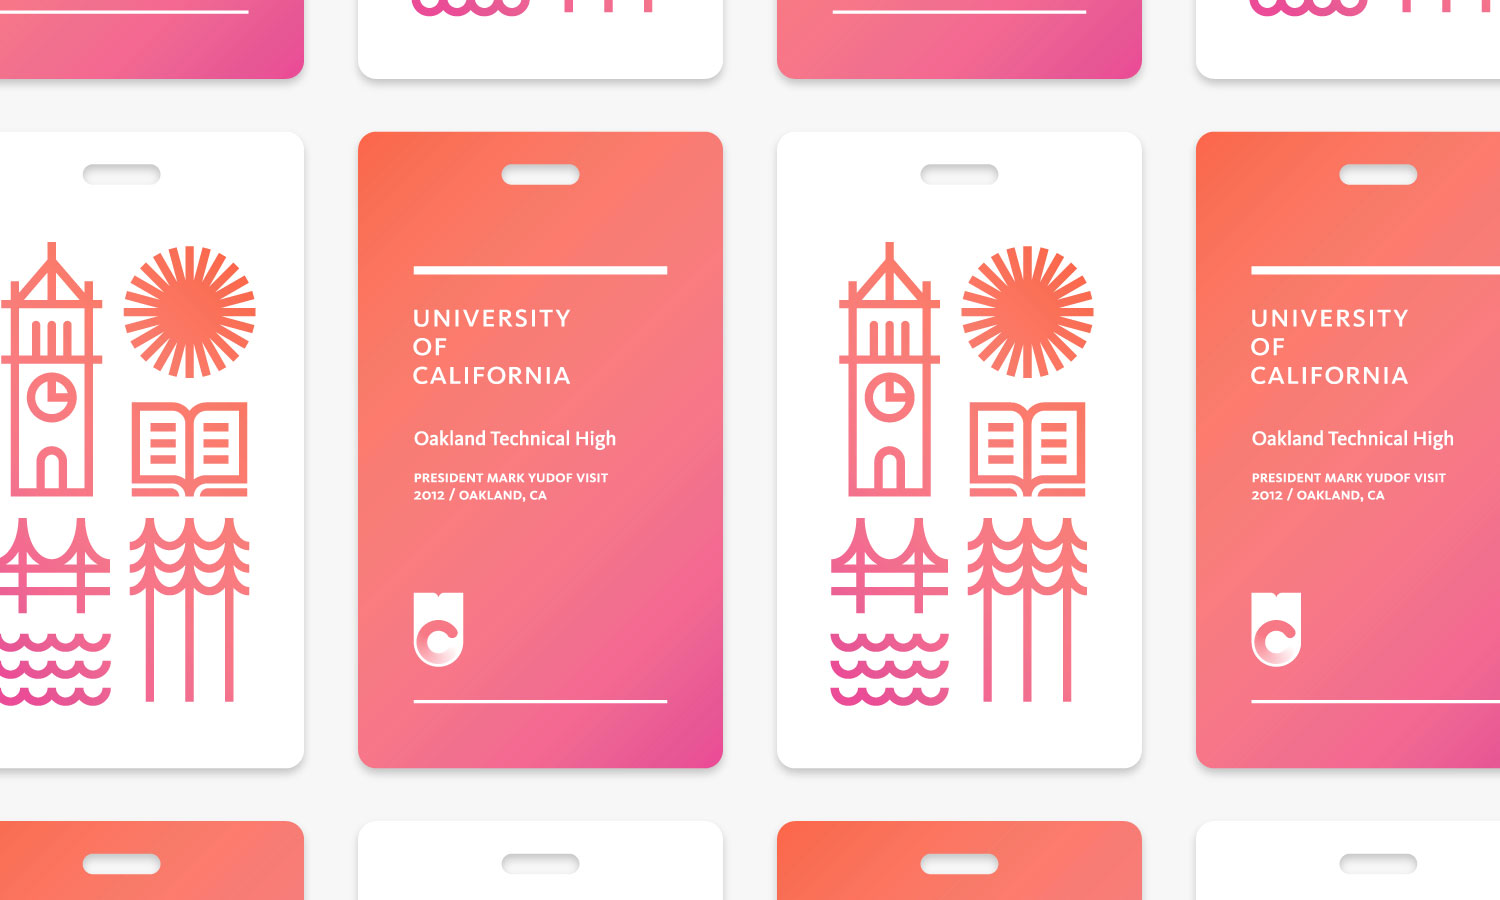 uc_brand_badges.jpg